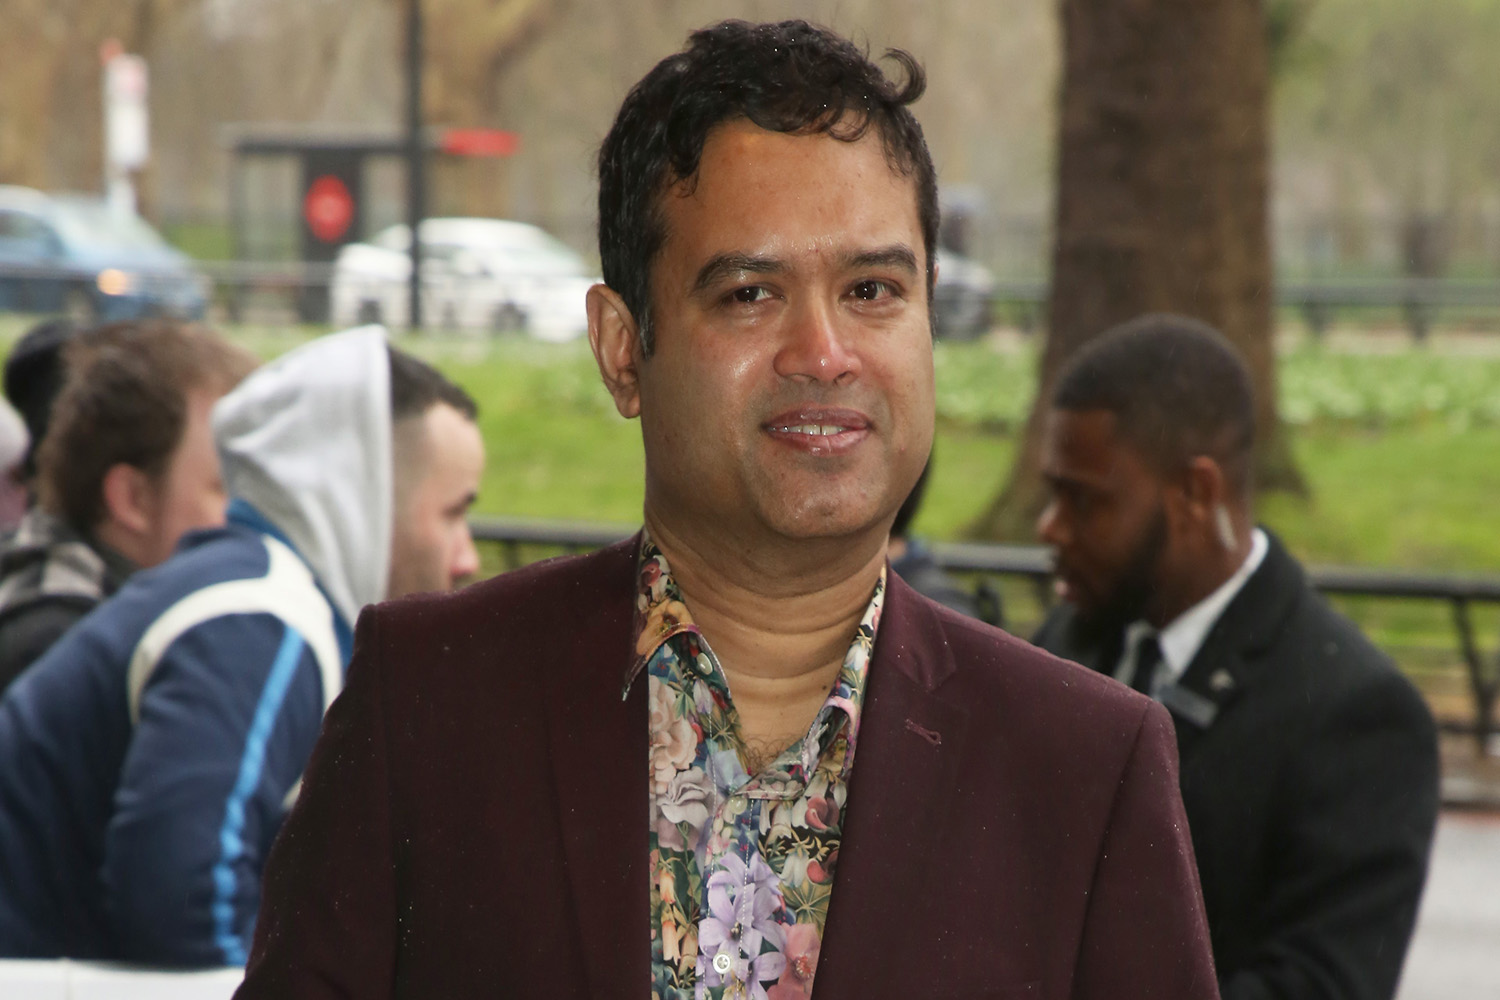 The Chase's Paul Sinha shares health update after coronavirus fear